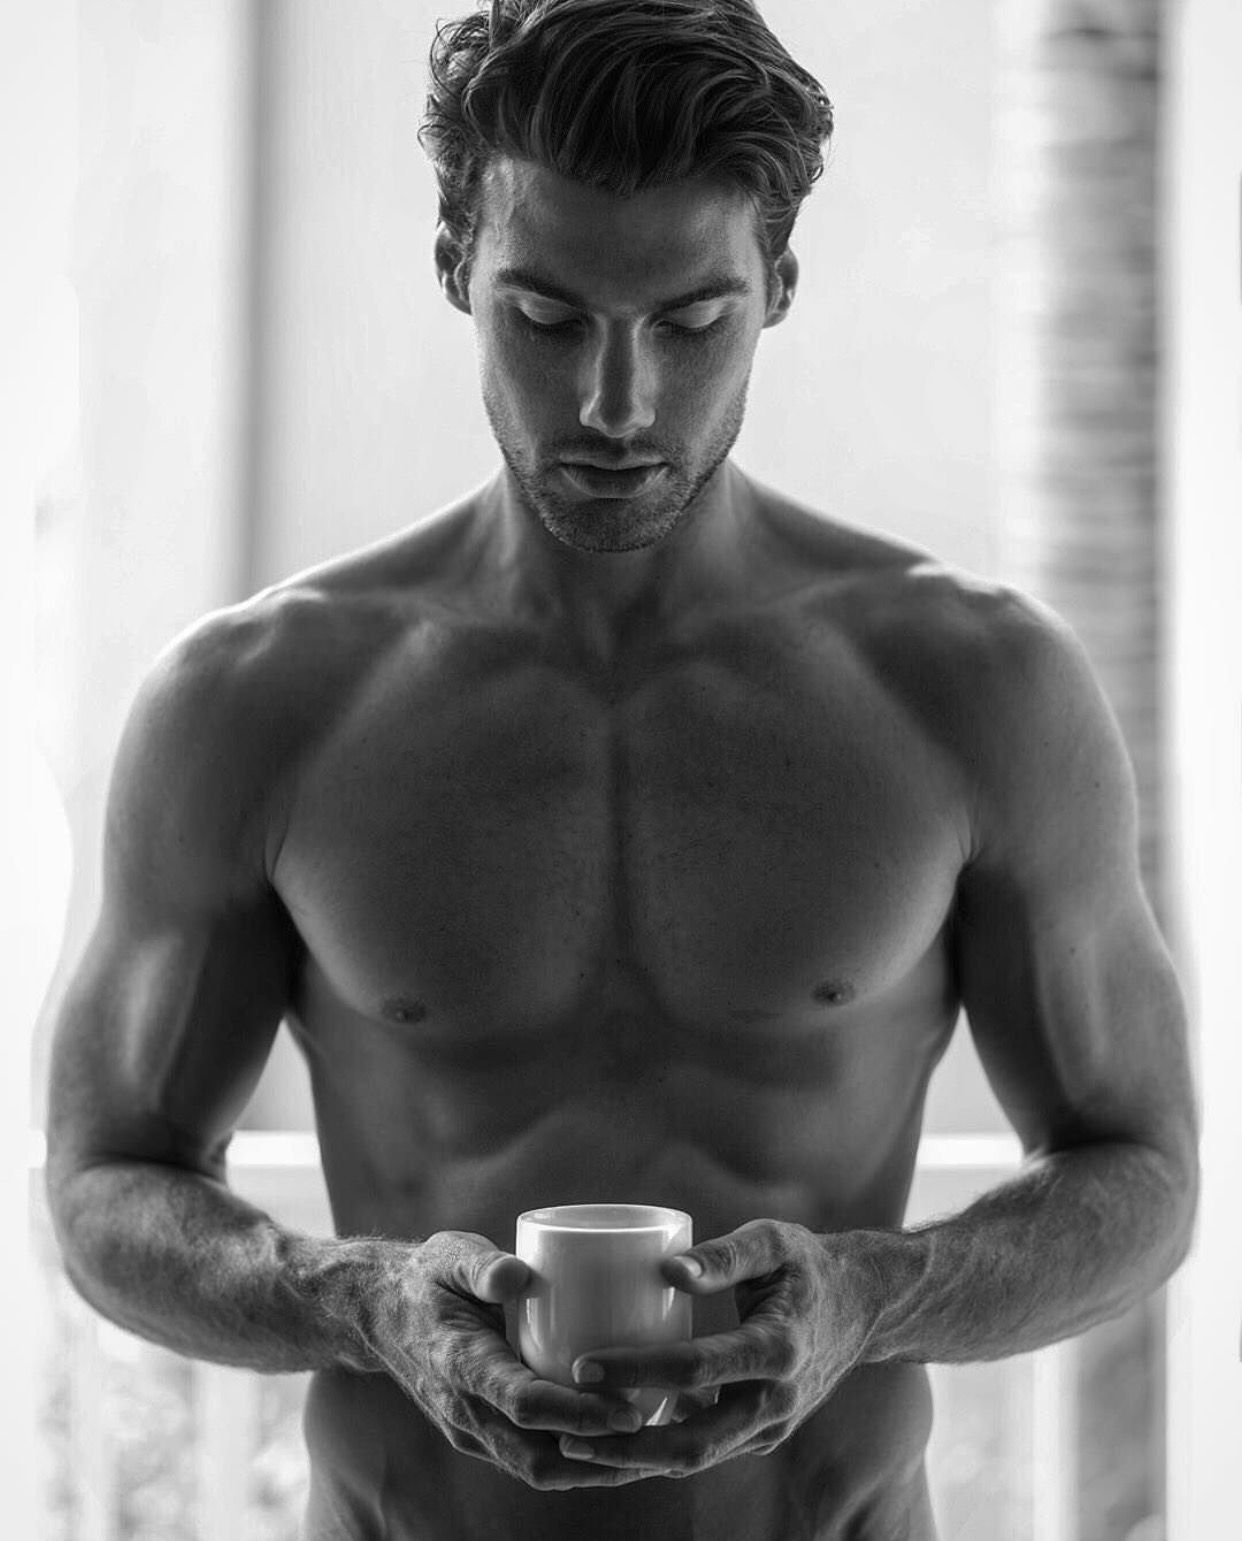 ebony-lesbien-nude-man-and-coffee-ebony